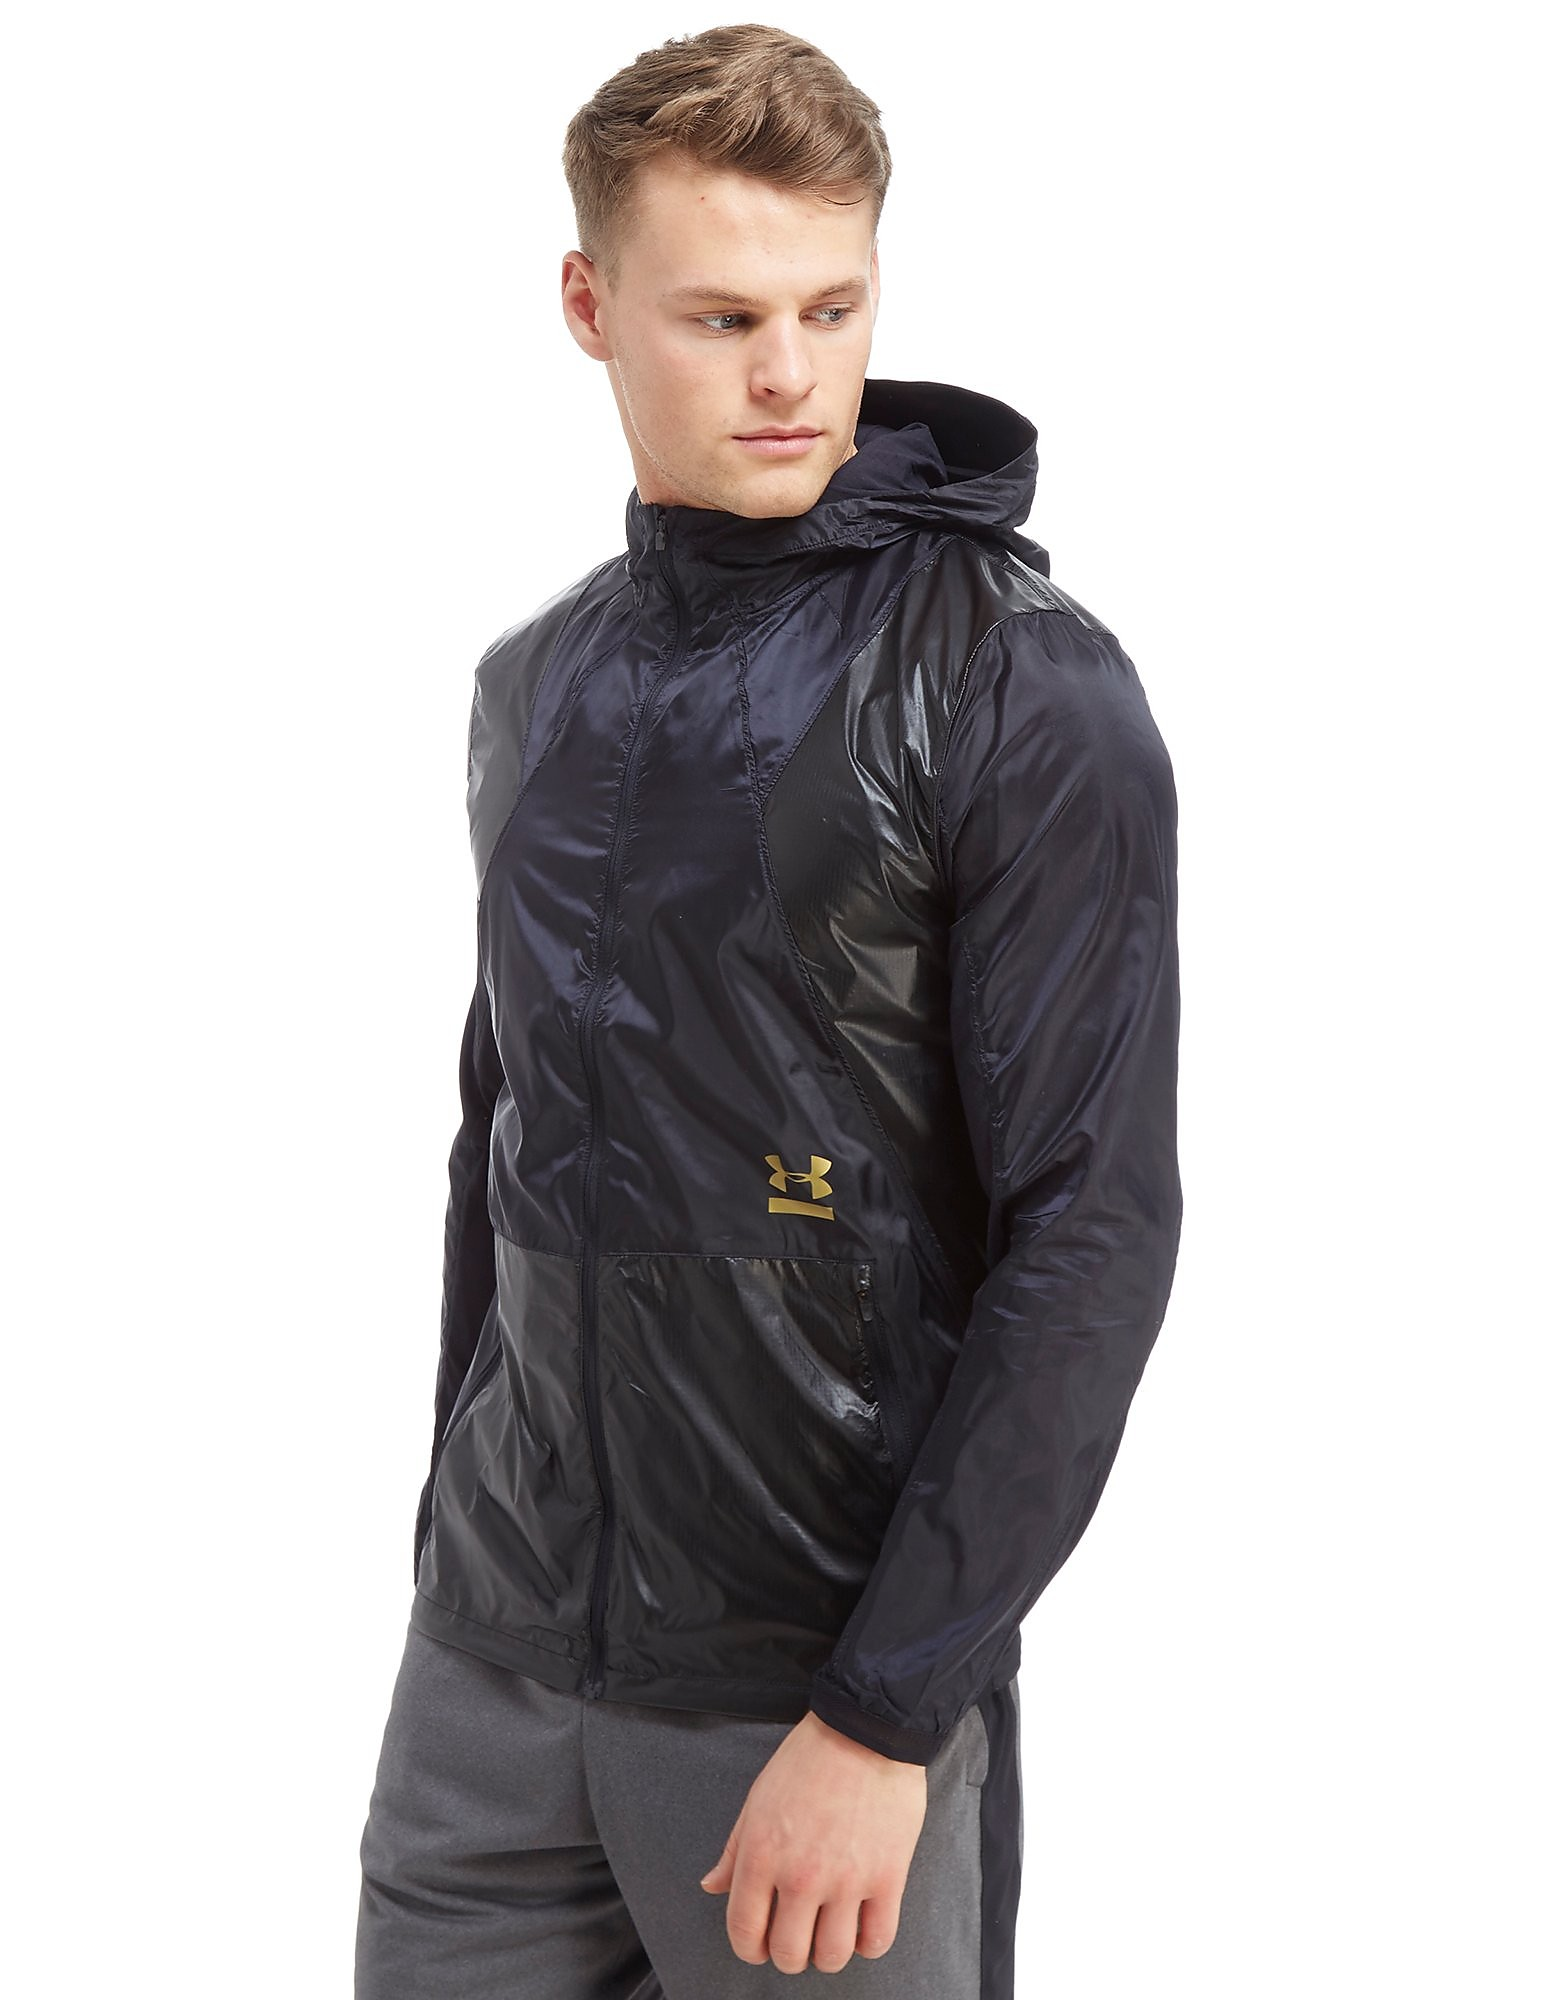 Under Armour Perpetual Full Zip Jacket